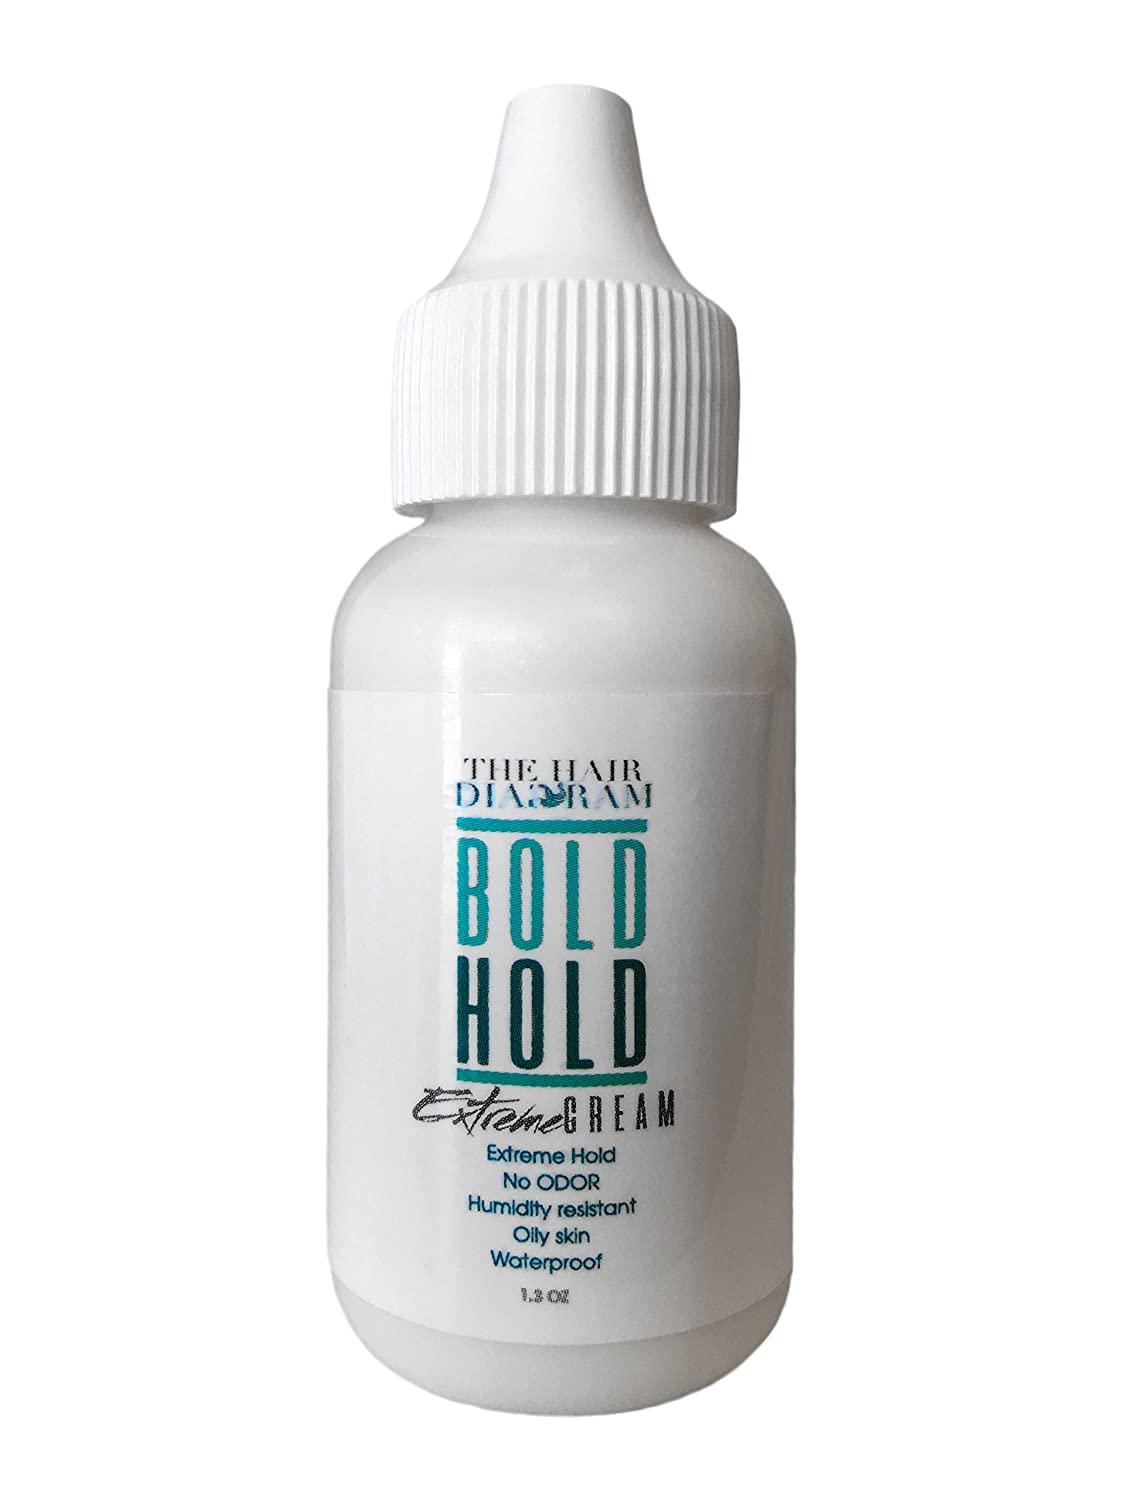 Bold Hold Extreme Cream Adhesive for Lace Wigs and Hair pieces …